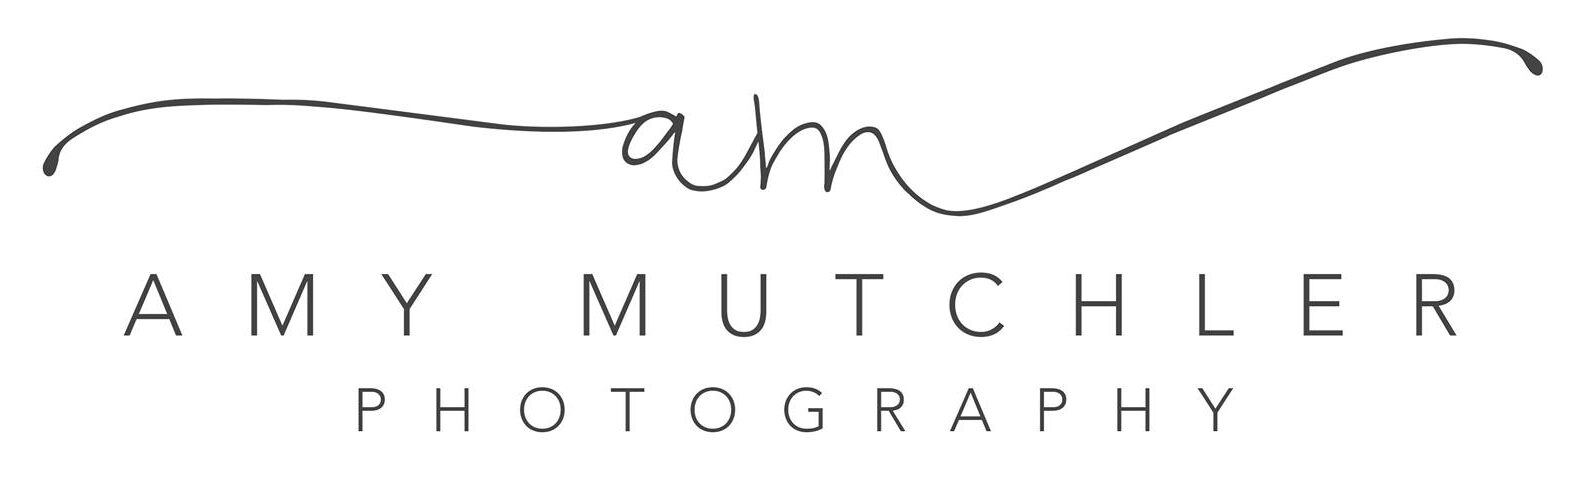 Amy Mutchler Photography